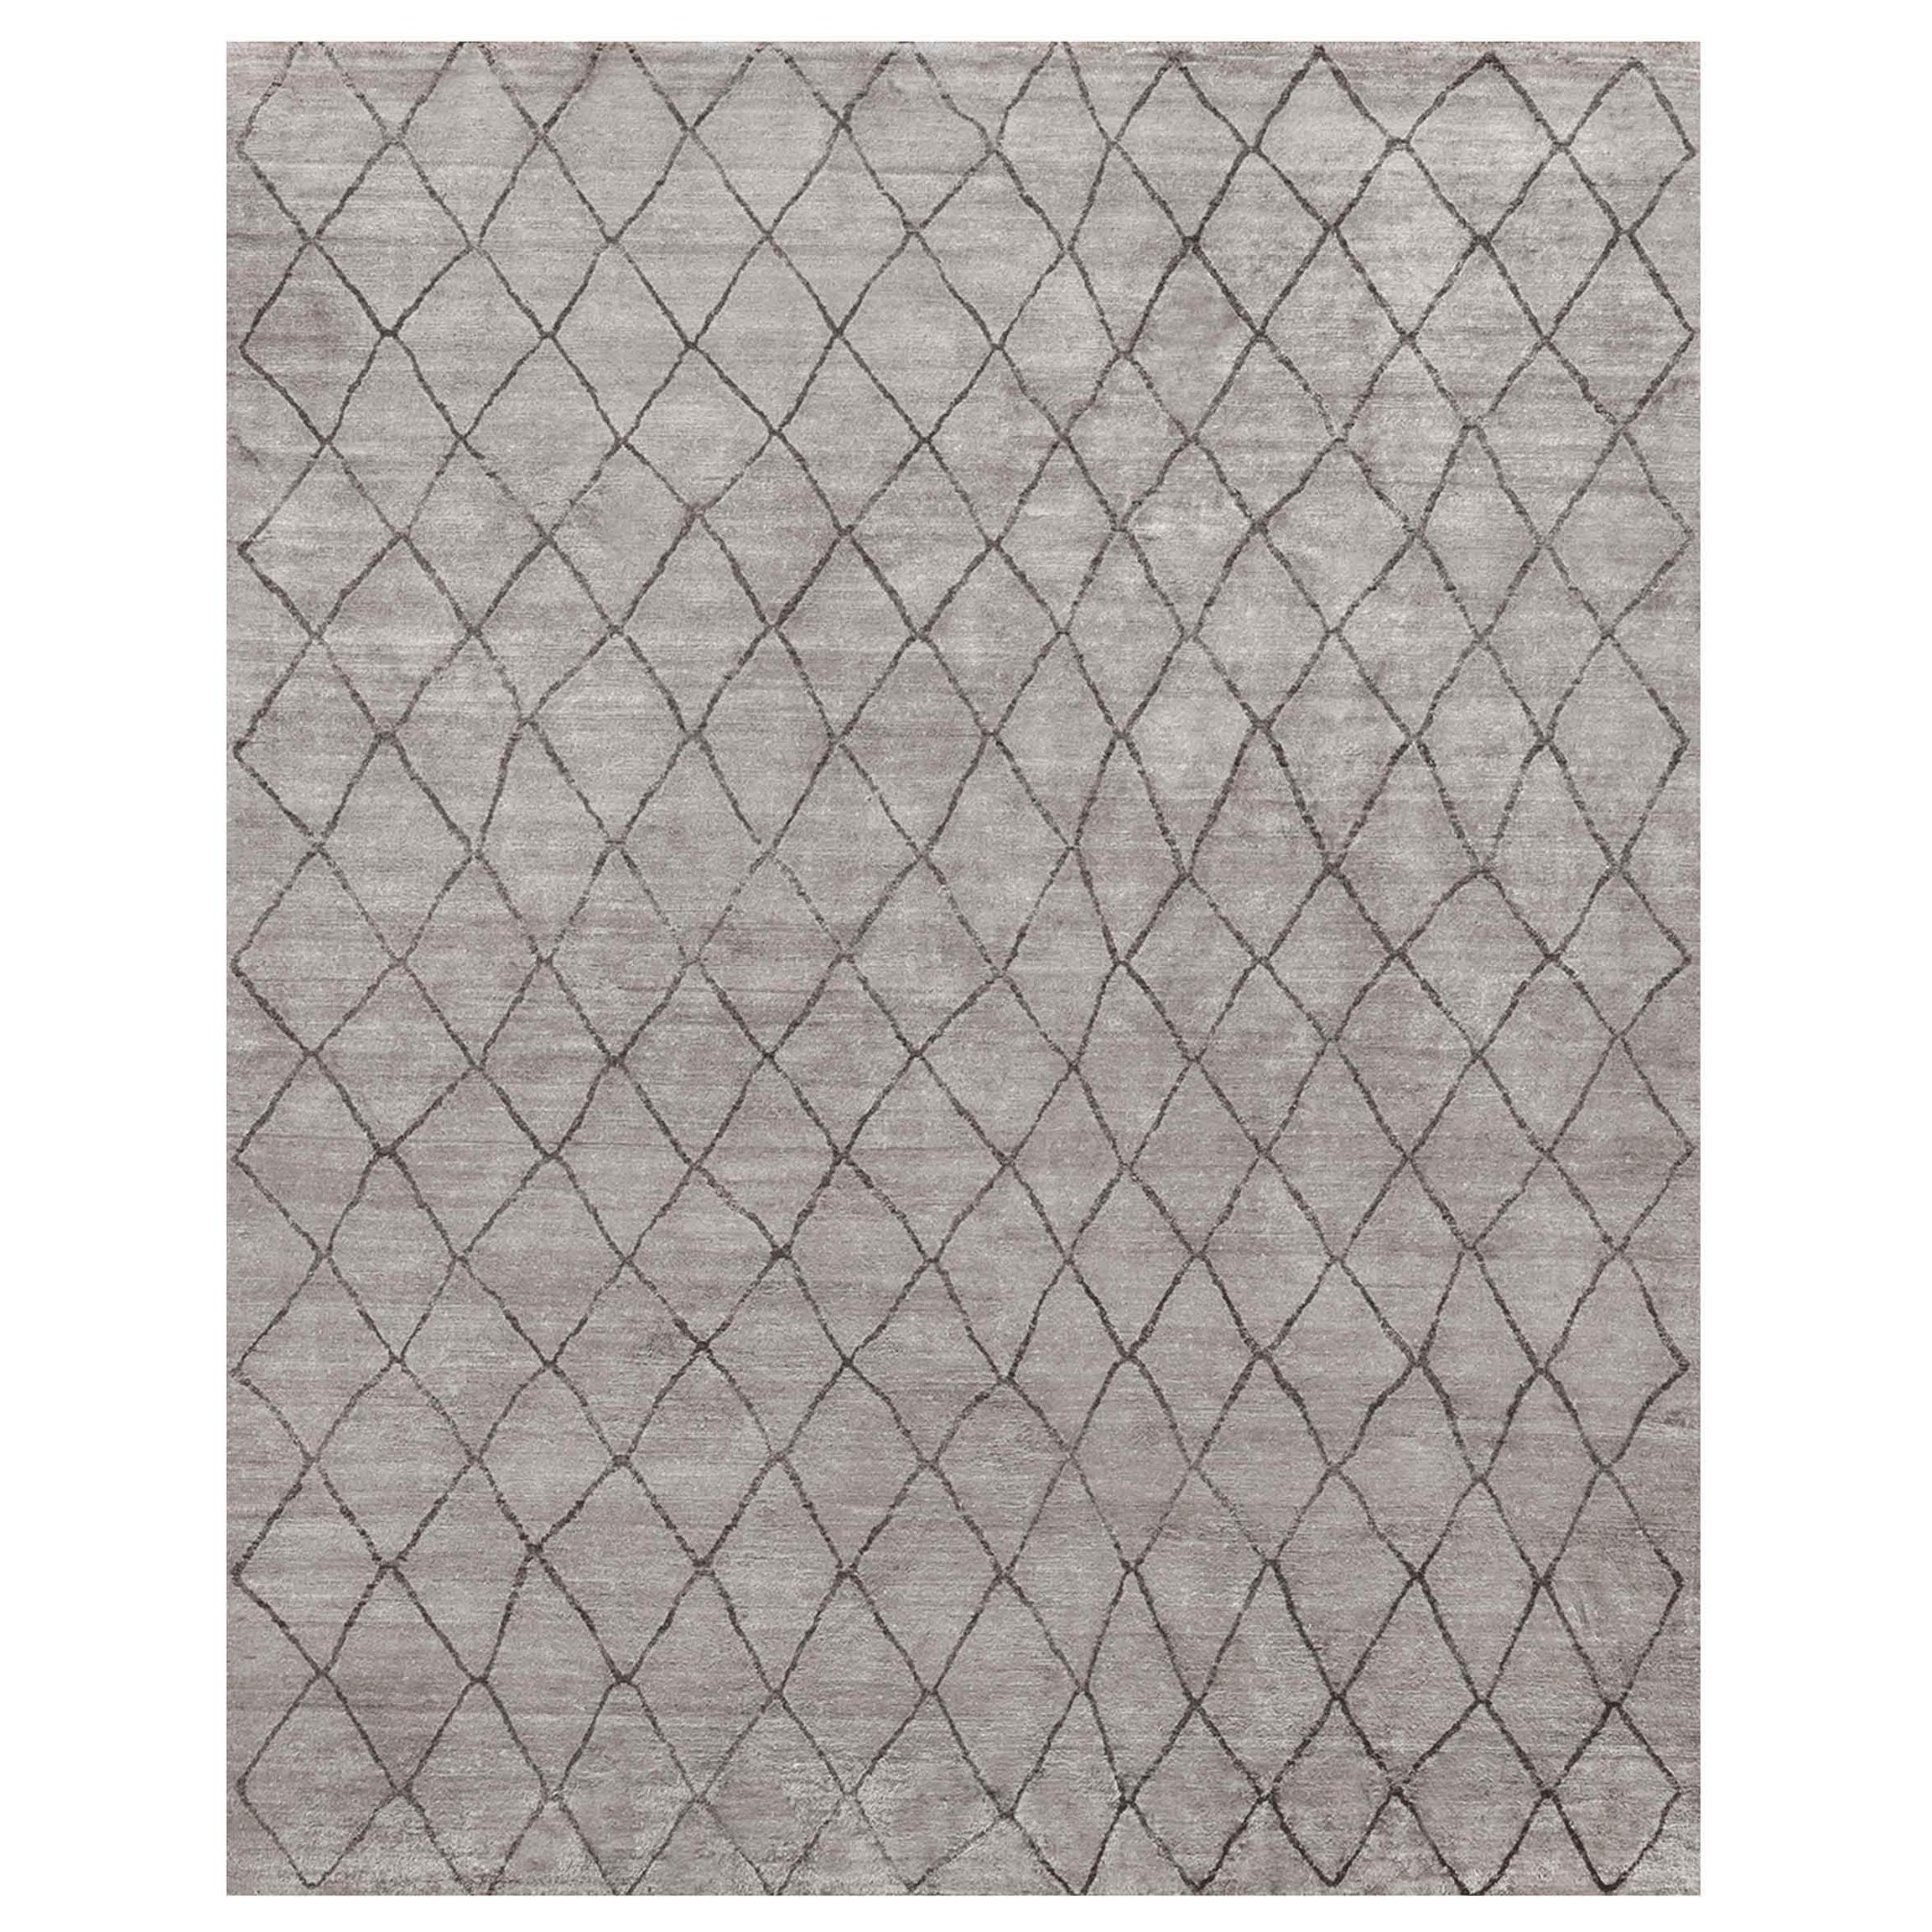 Ben Soleimani Arlequin Rug– Ultra-plush Hand-knotted Viscose Charcoal 10'x14'